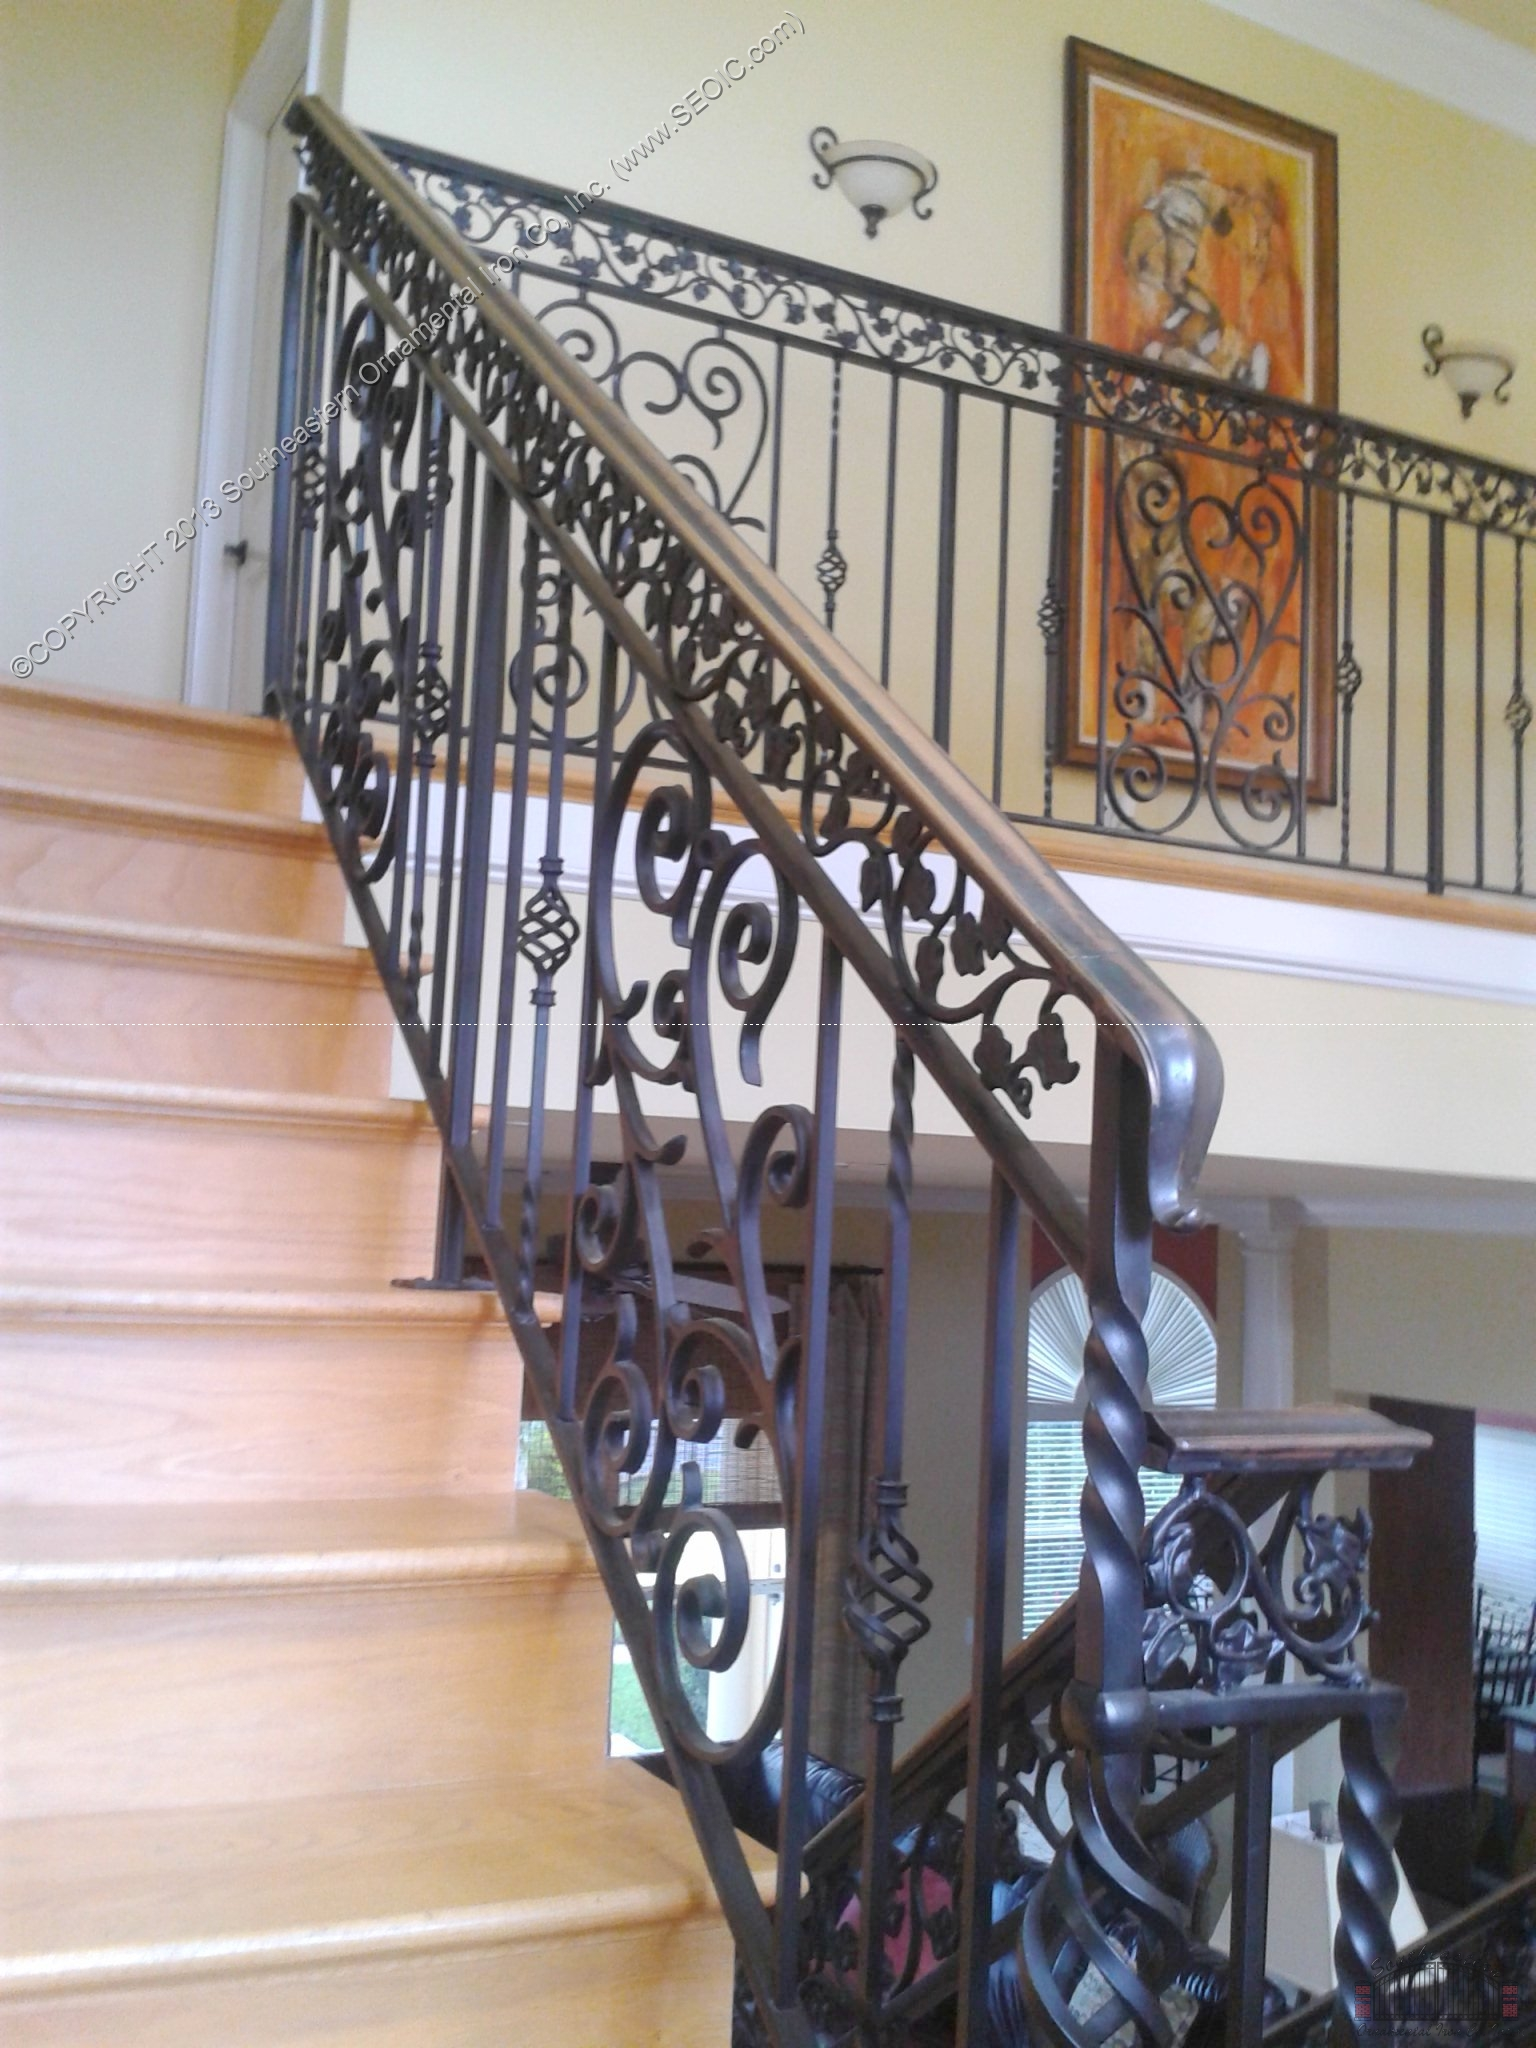 Wrought iron railing with bronze cap rail